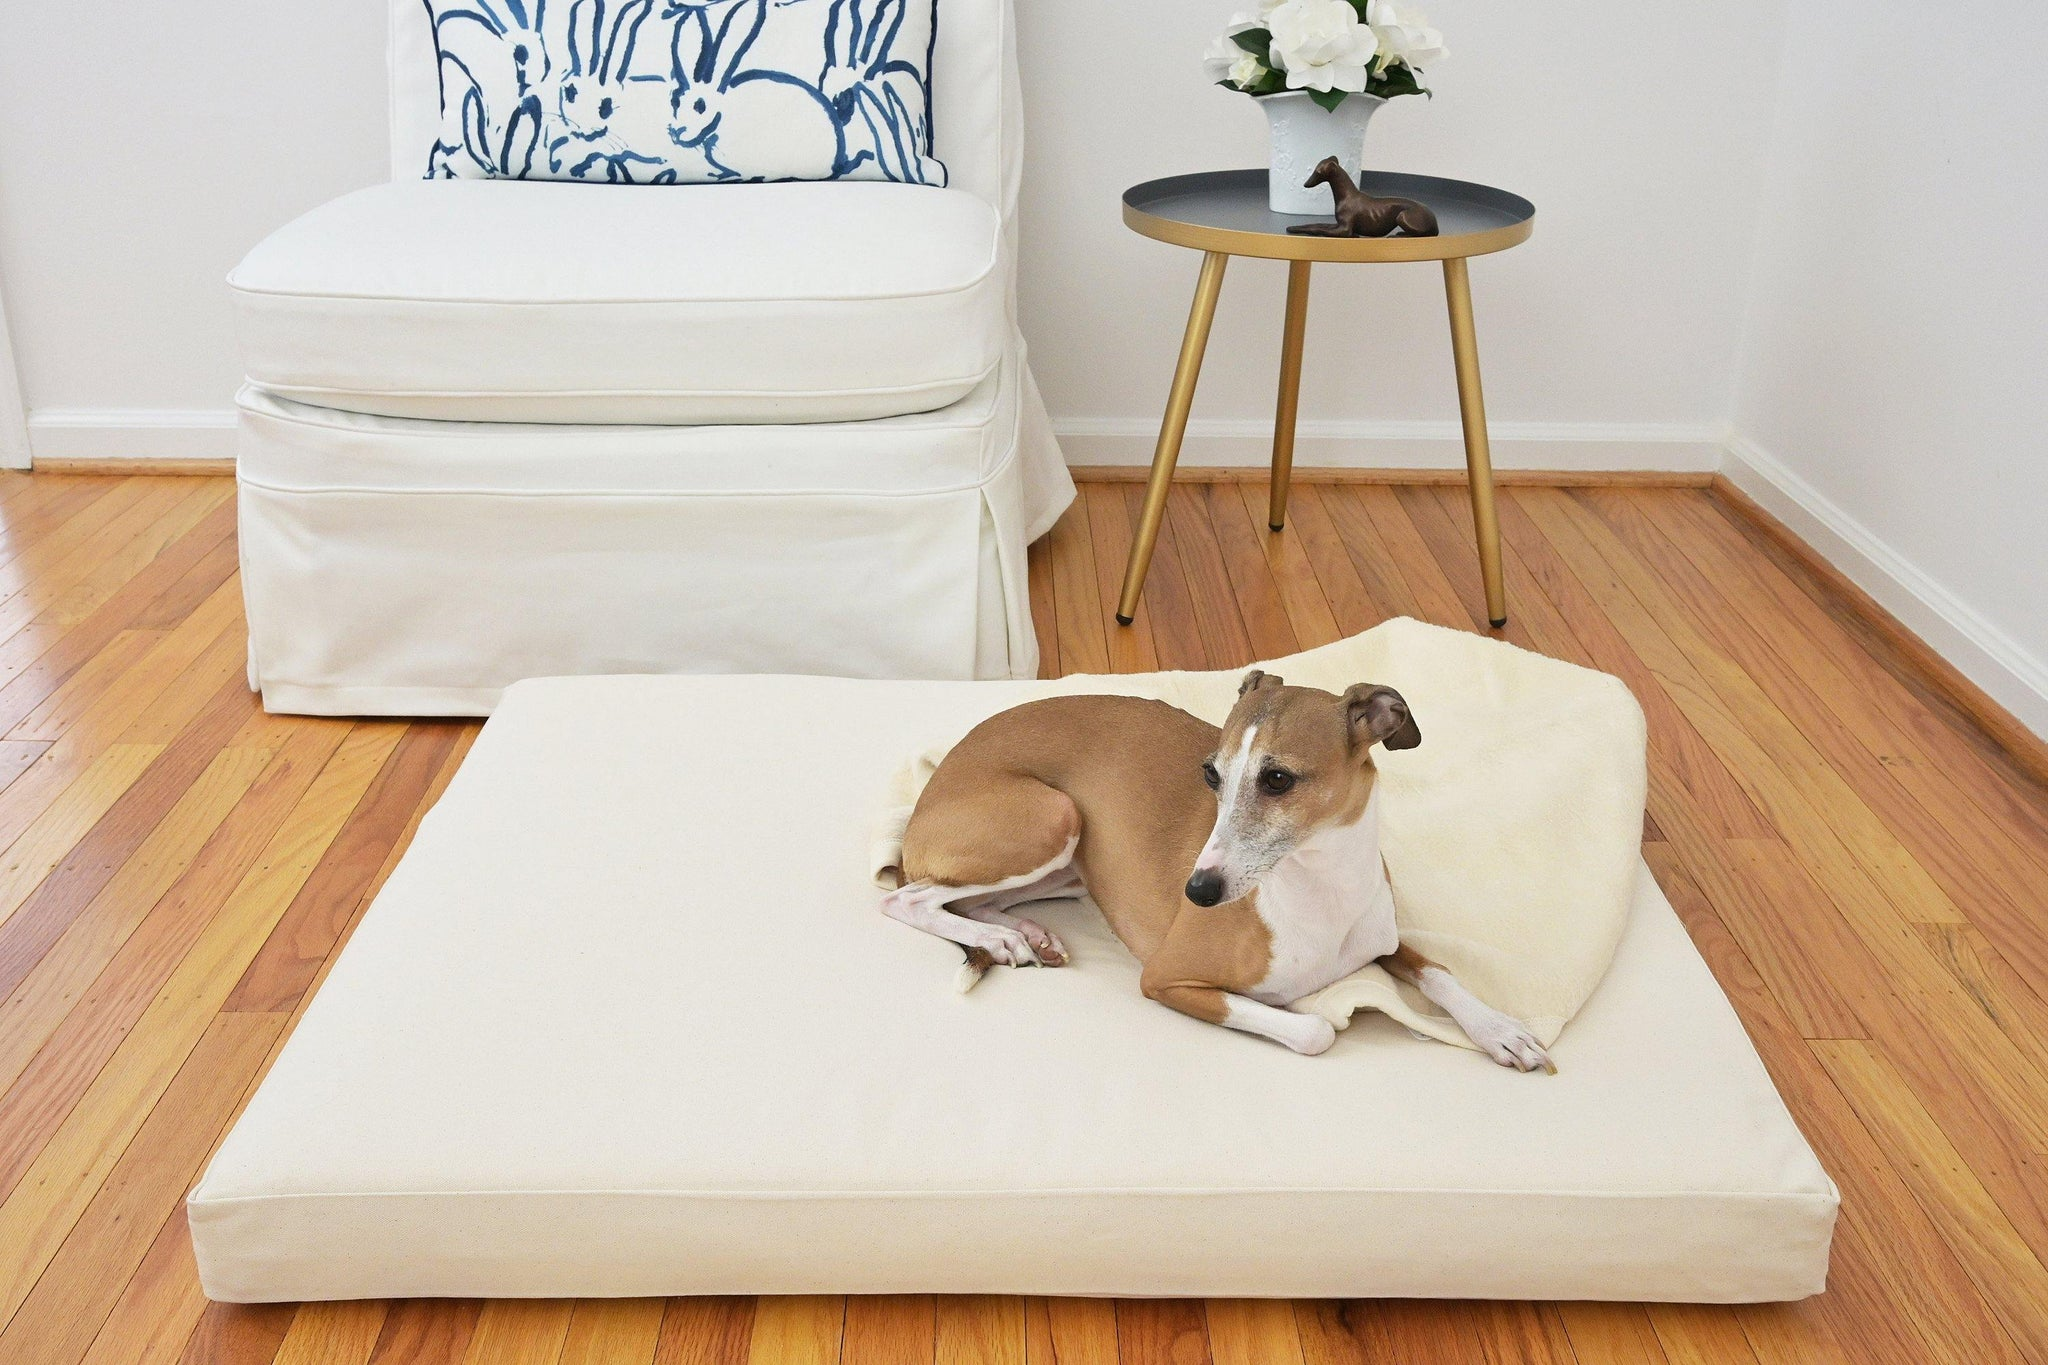 greyhound laying on orthopedic dog bed natural beige